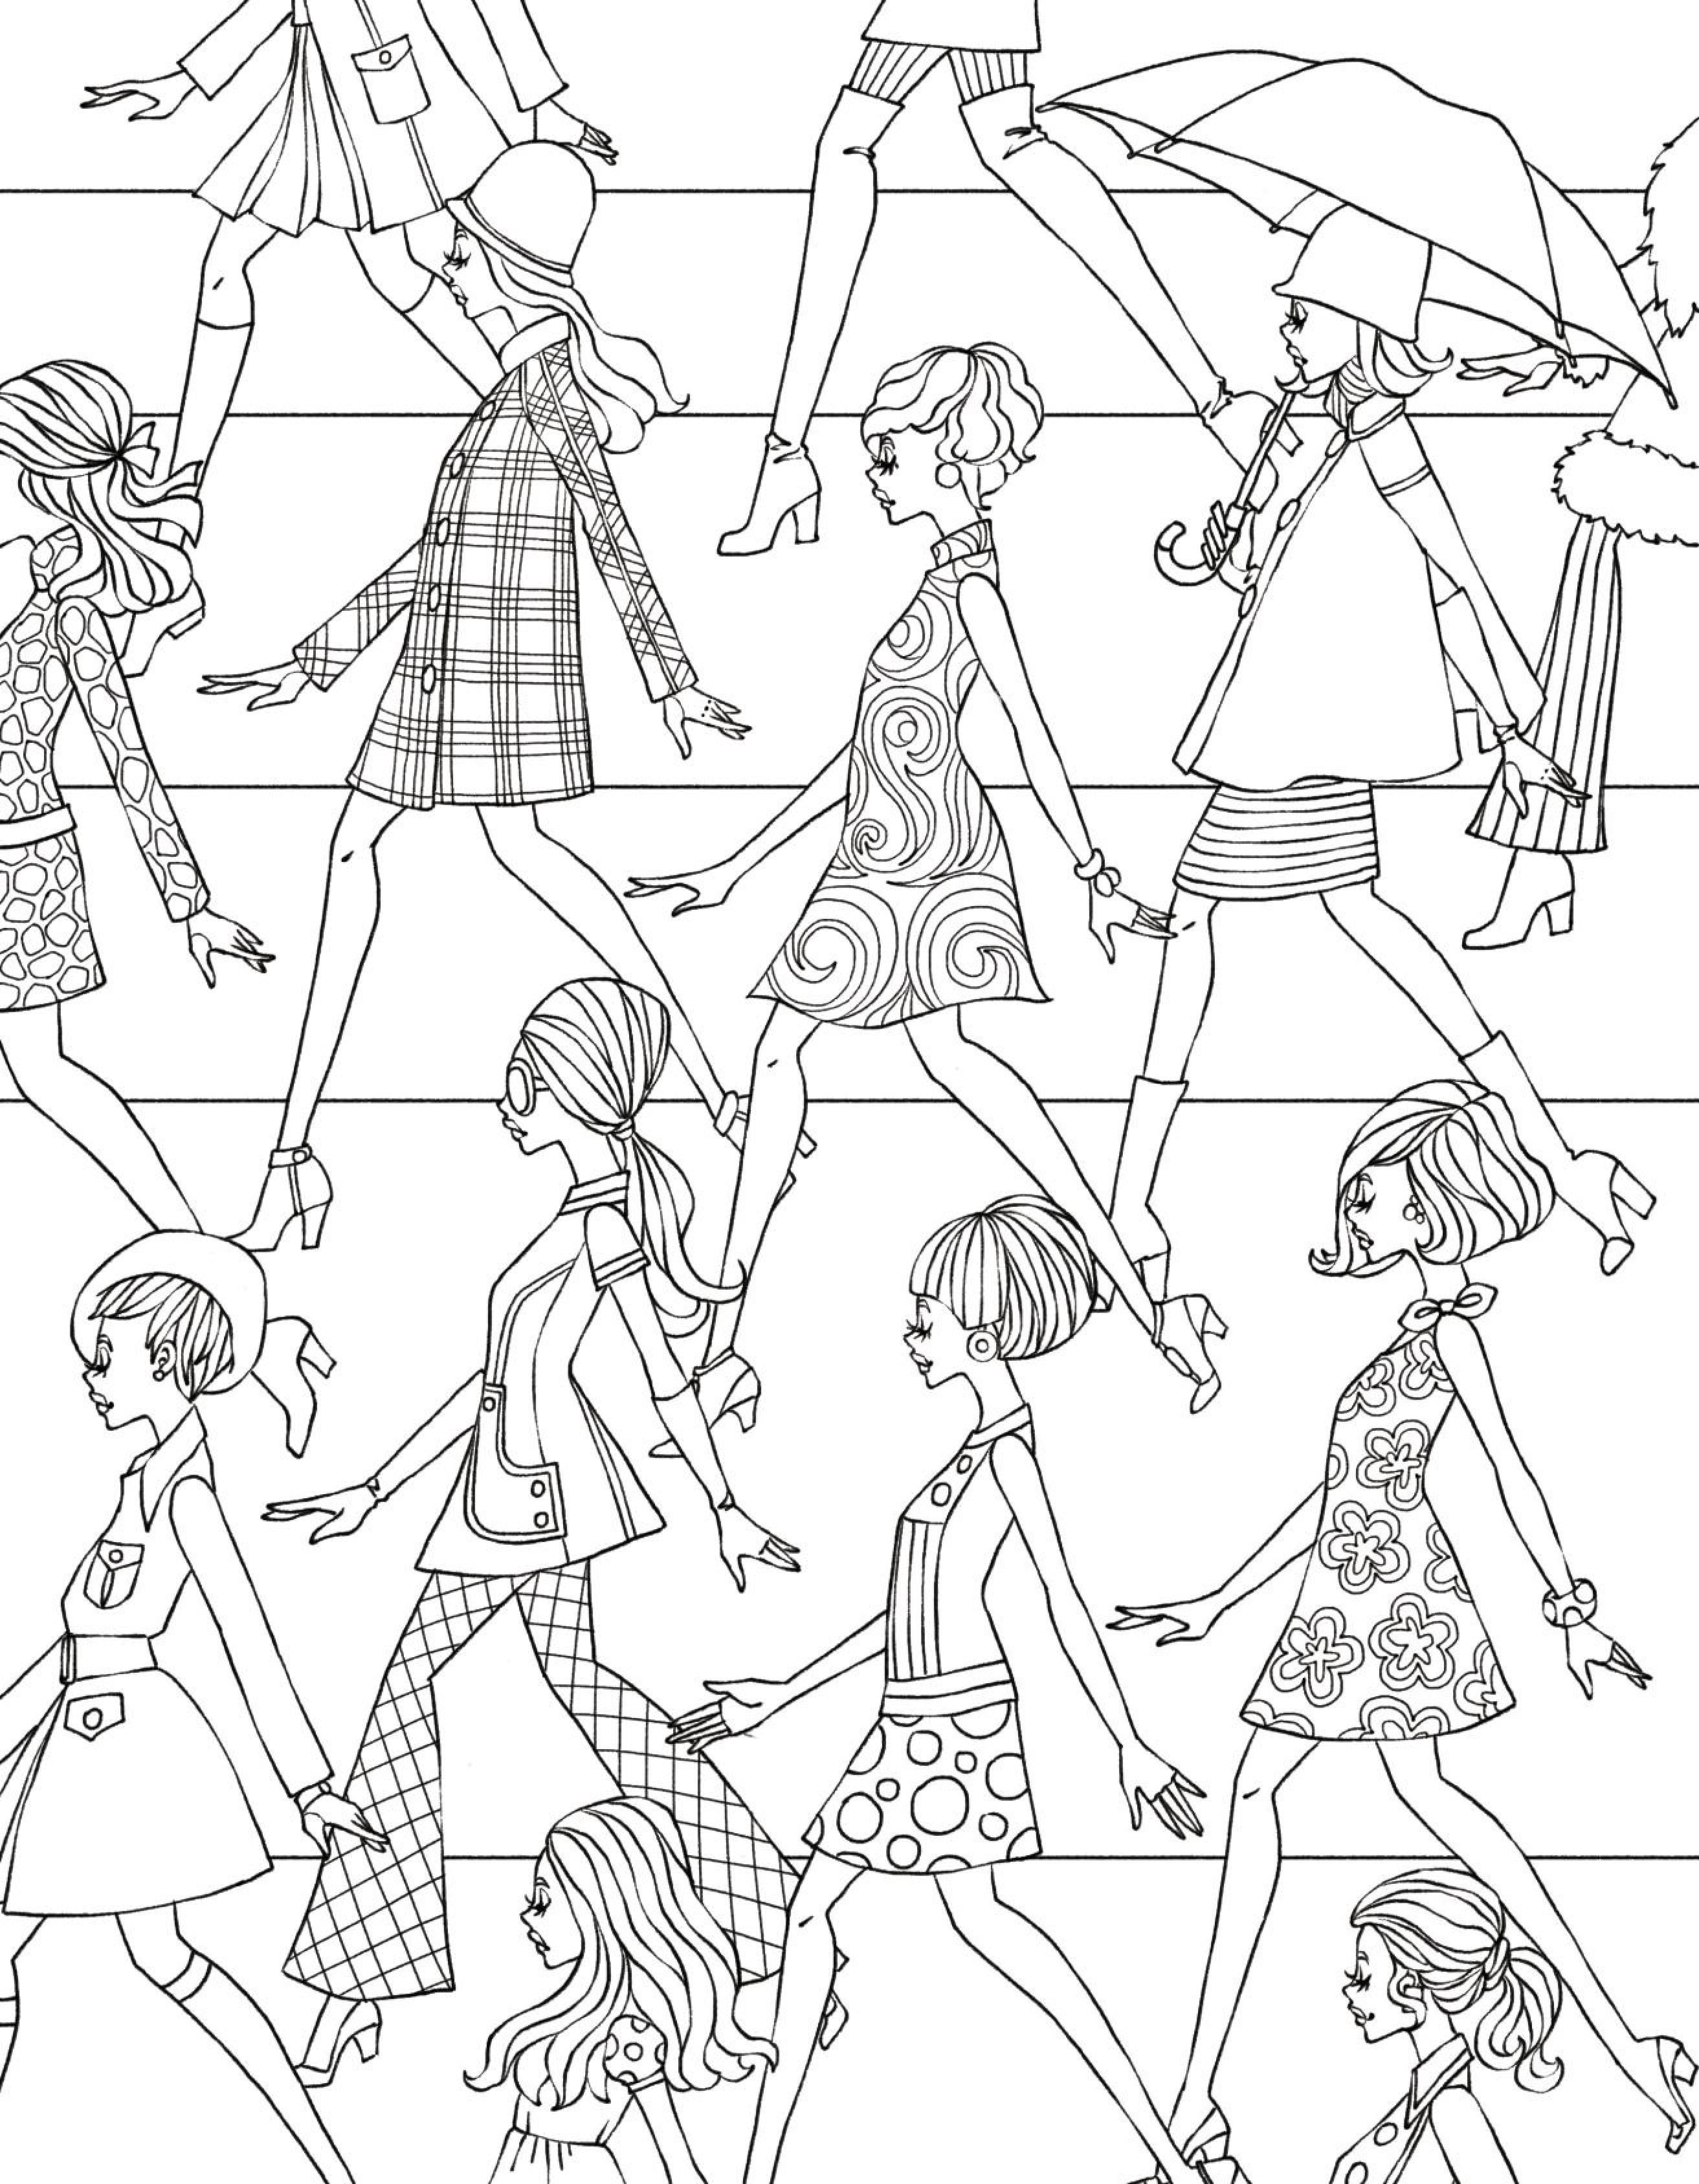 Old Fashioned Coloring Pages Download Fashion Coloring Book Coloring Pages Coloring Books